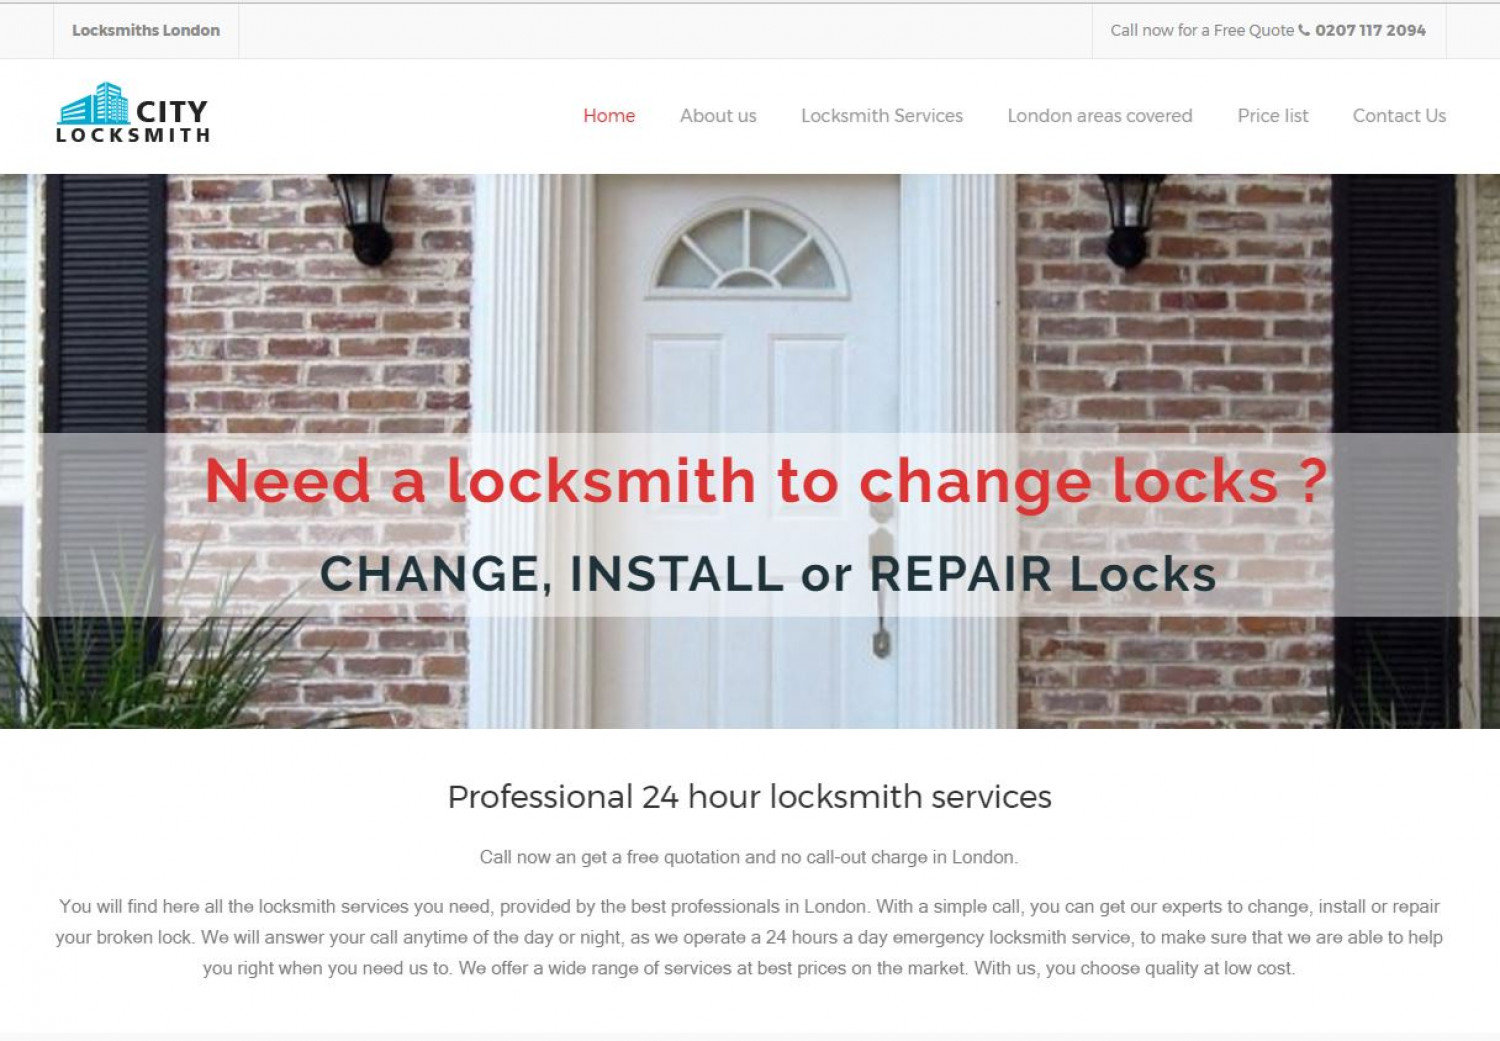 City Locksmith in London Infographic